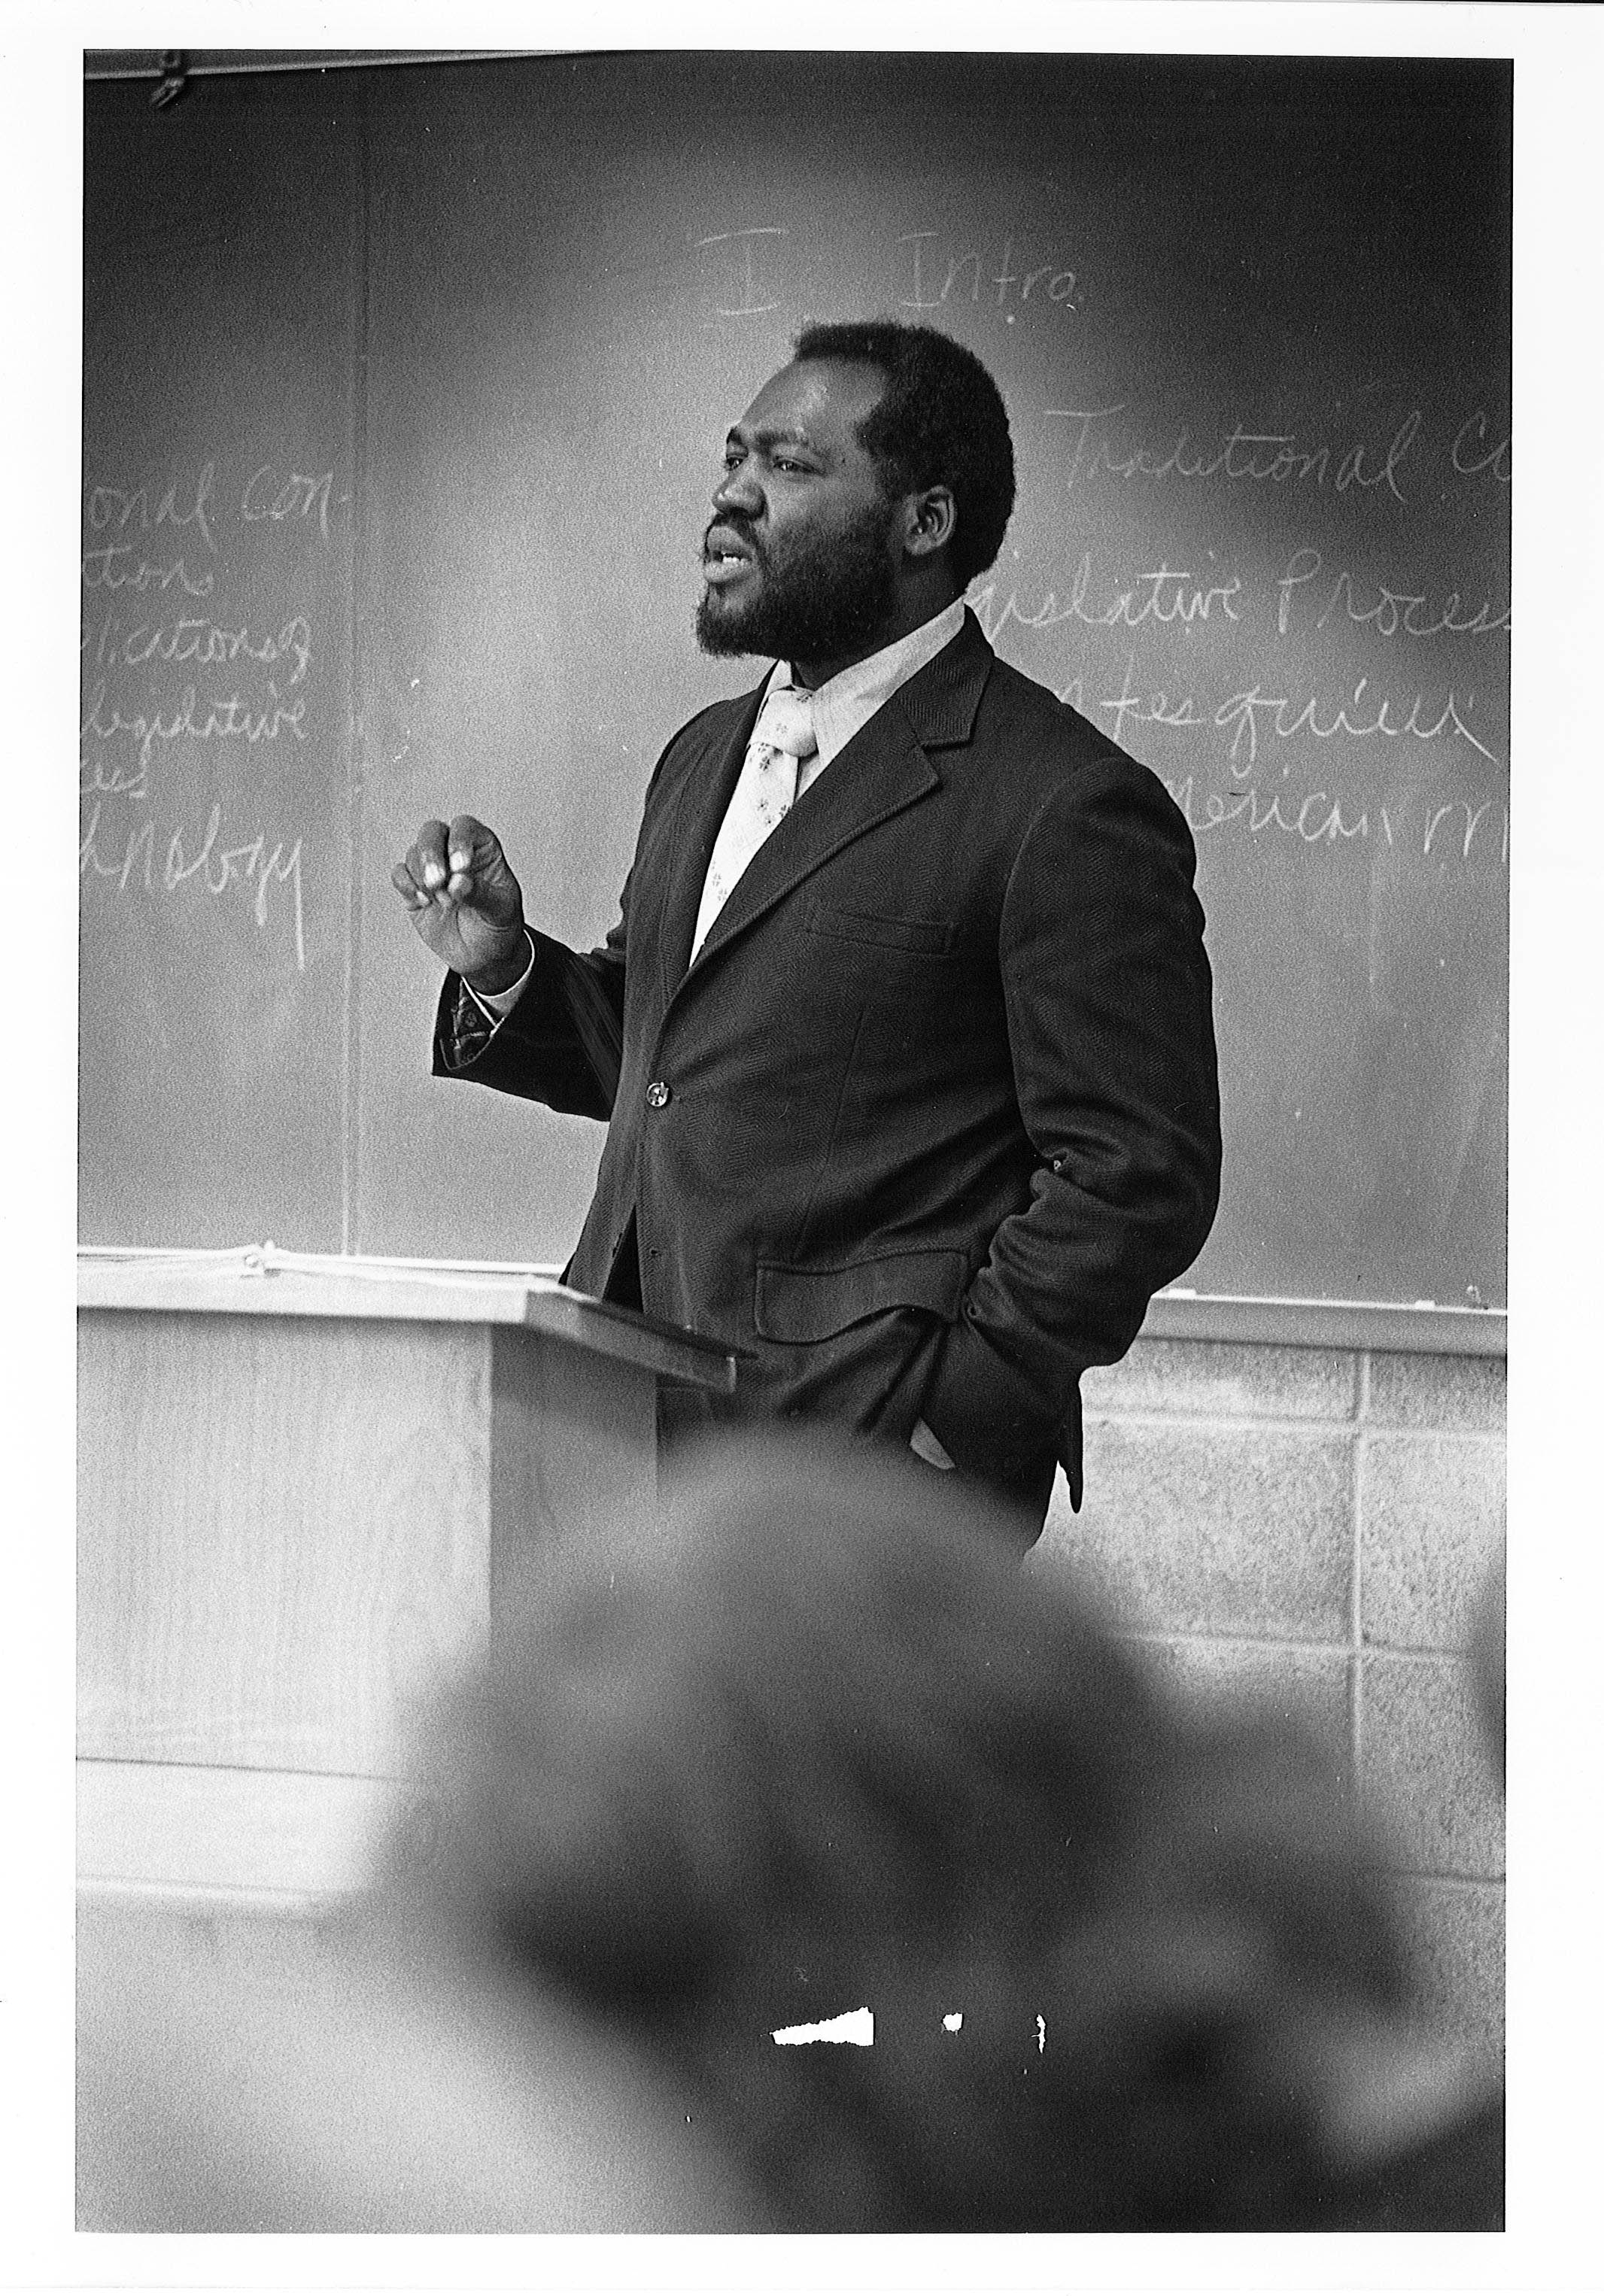 Black and white image of Lee Roy Berry lecturing in front of a classroom chalkboard